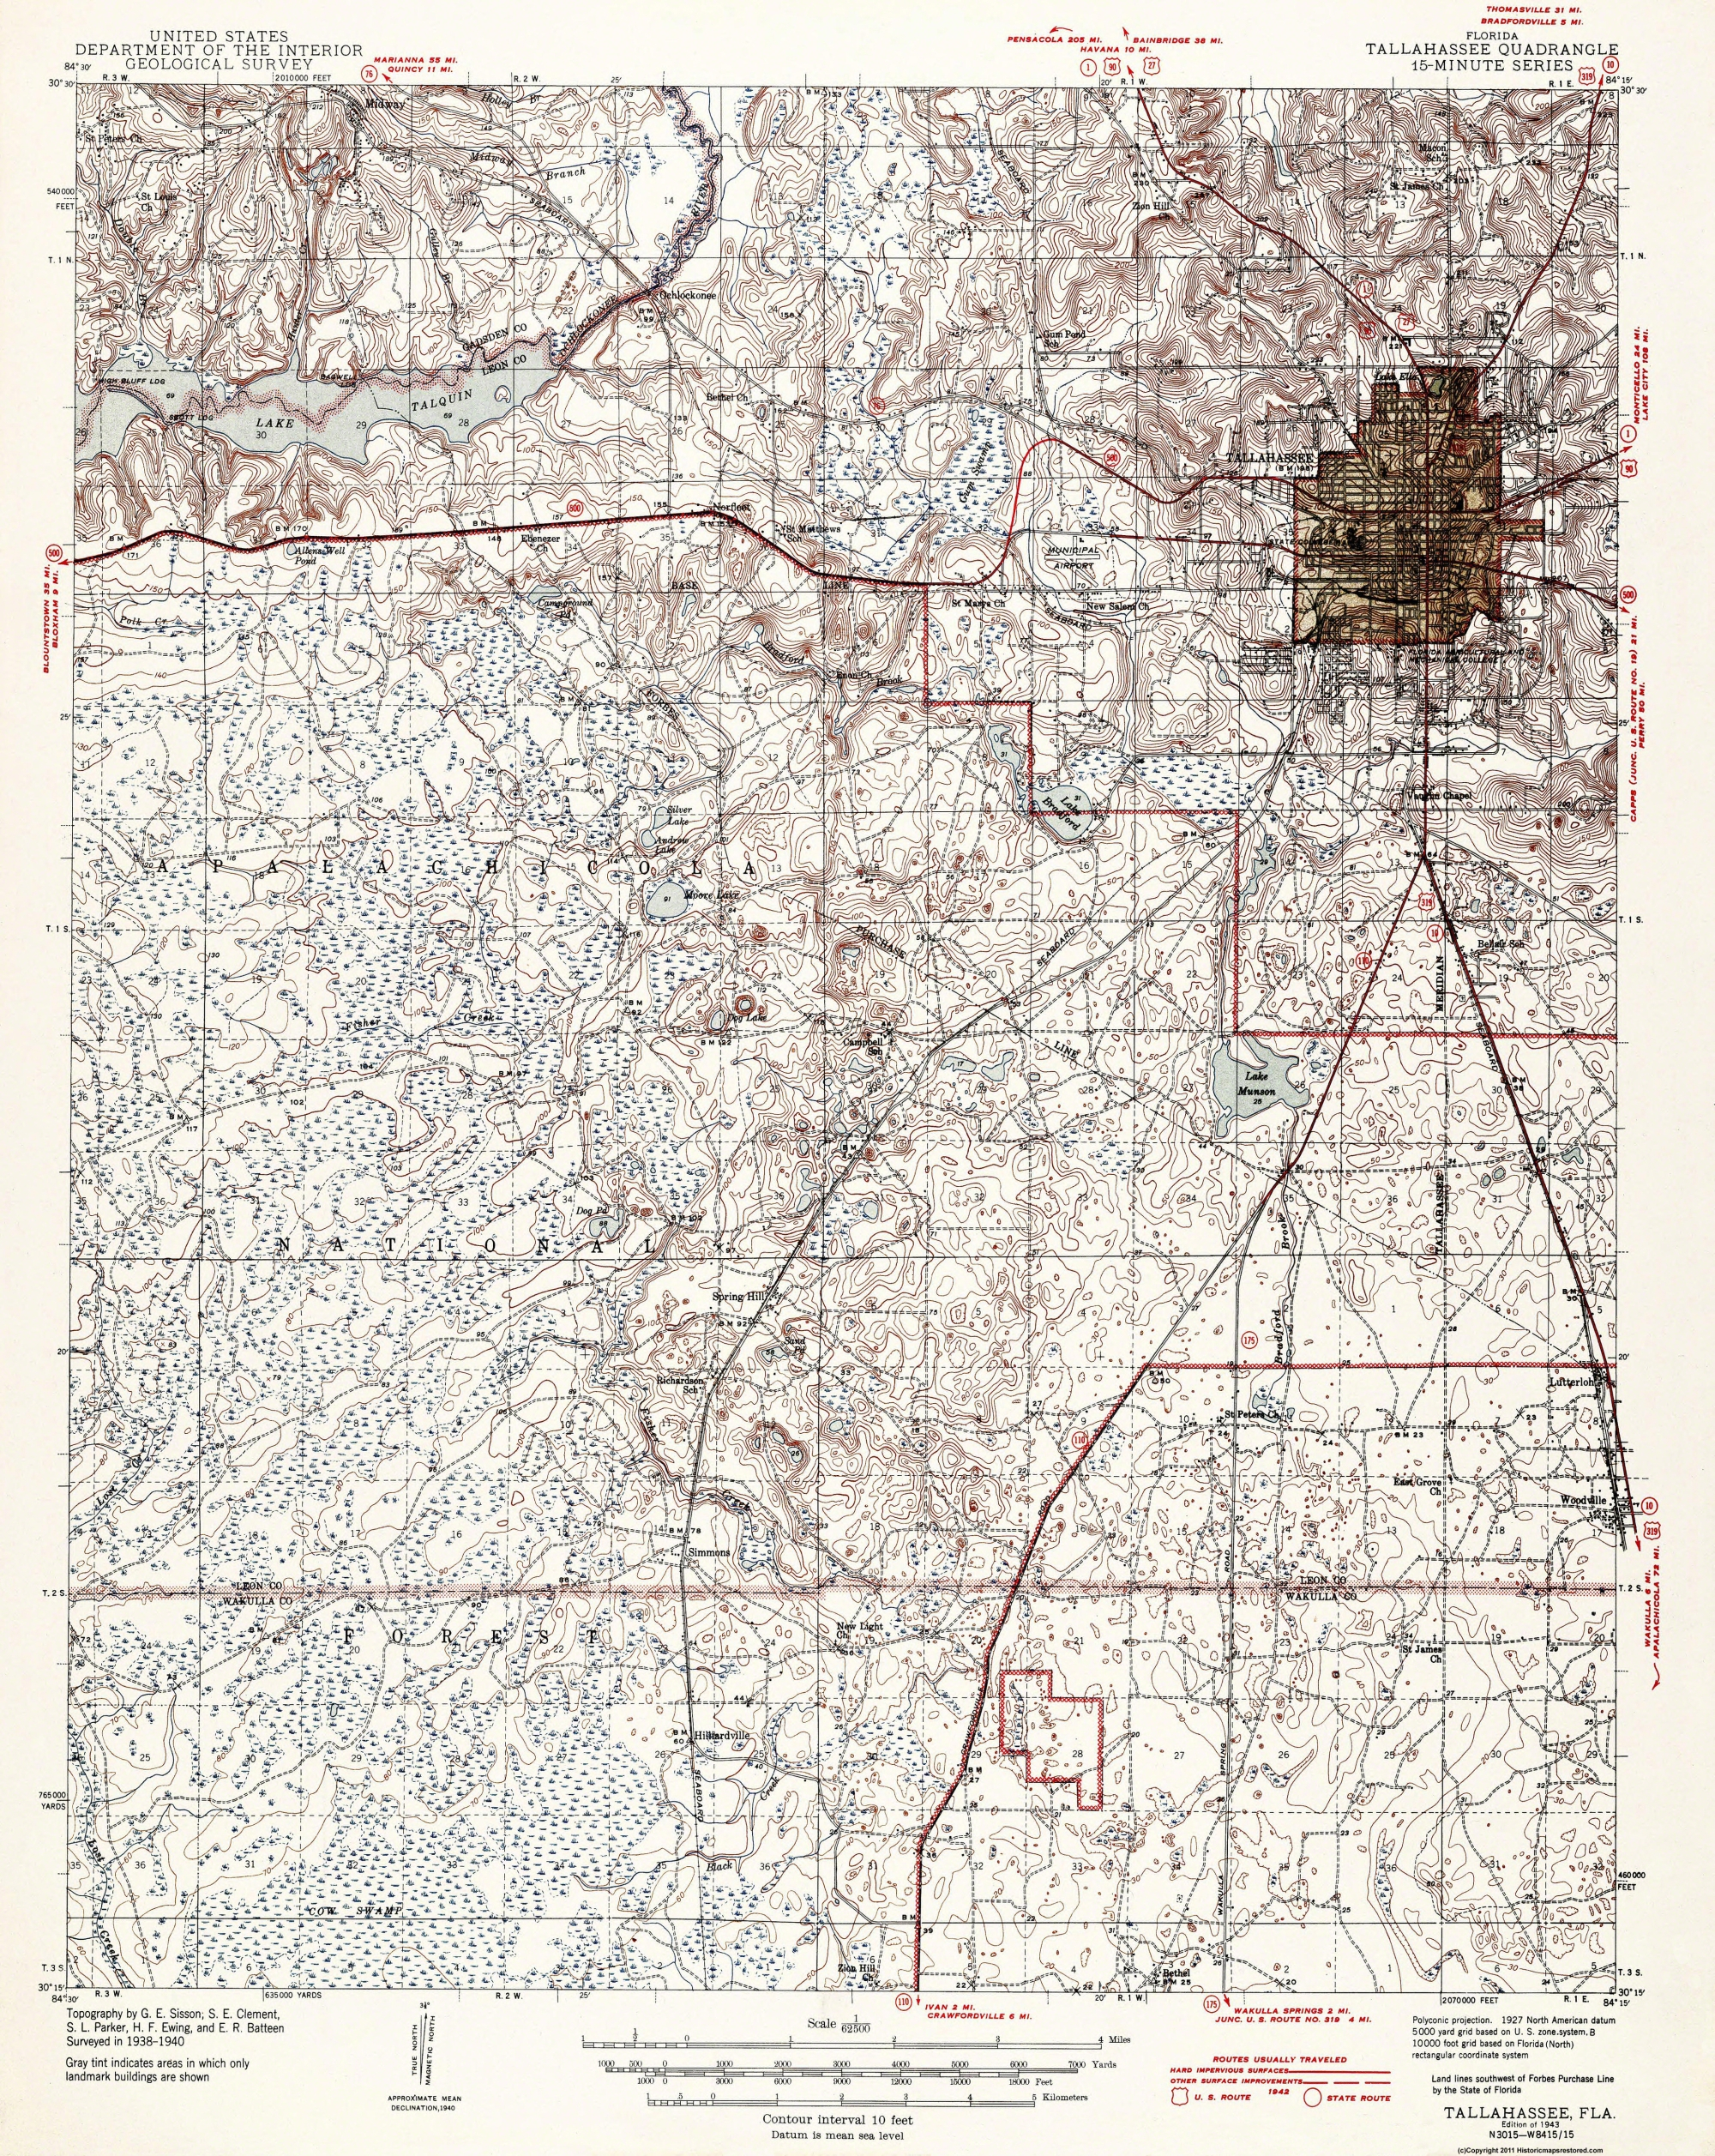 Map Of Florida Showing Tallahassee.Topographical Map Print Tallahassee Florida Quad Usgs 1943 17 X 21 38